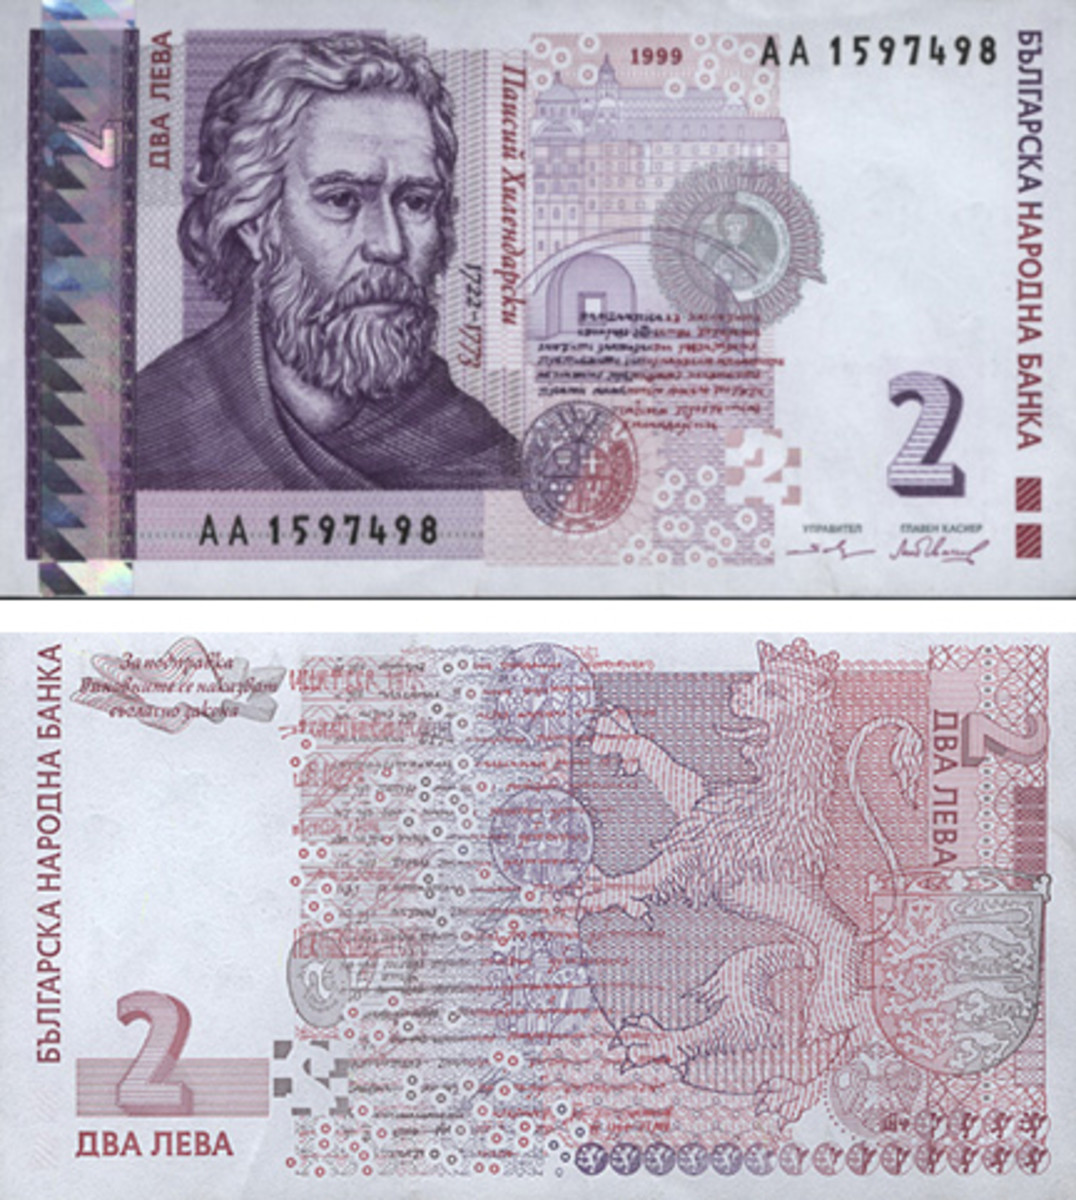 Bulgaria is ending the 2-lev bank note and replacing it with a 2-lev, bimetallic coin.